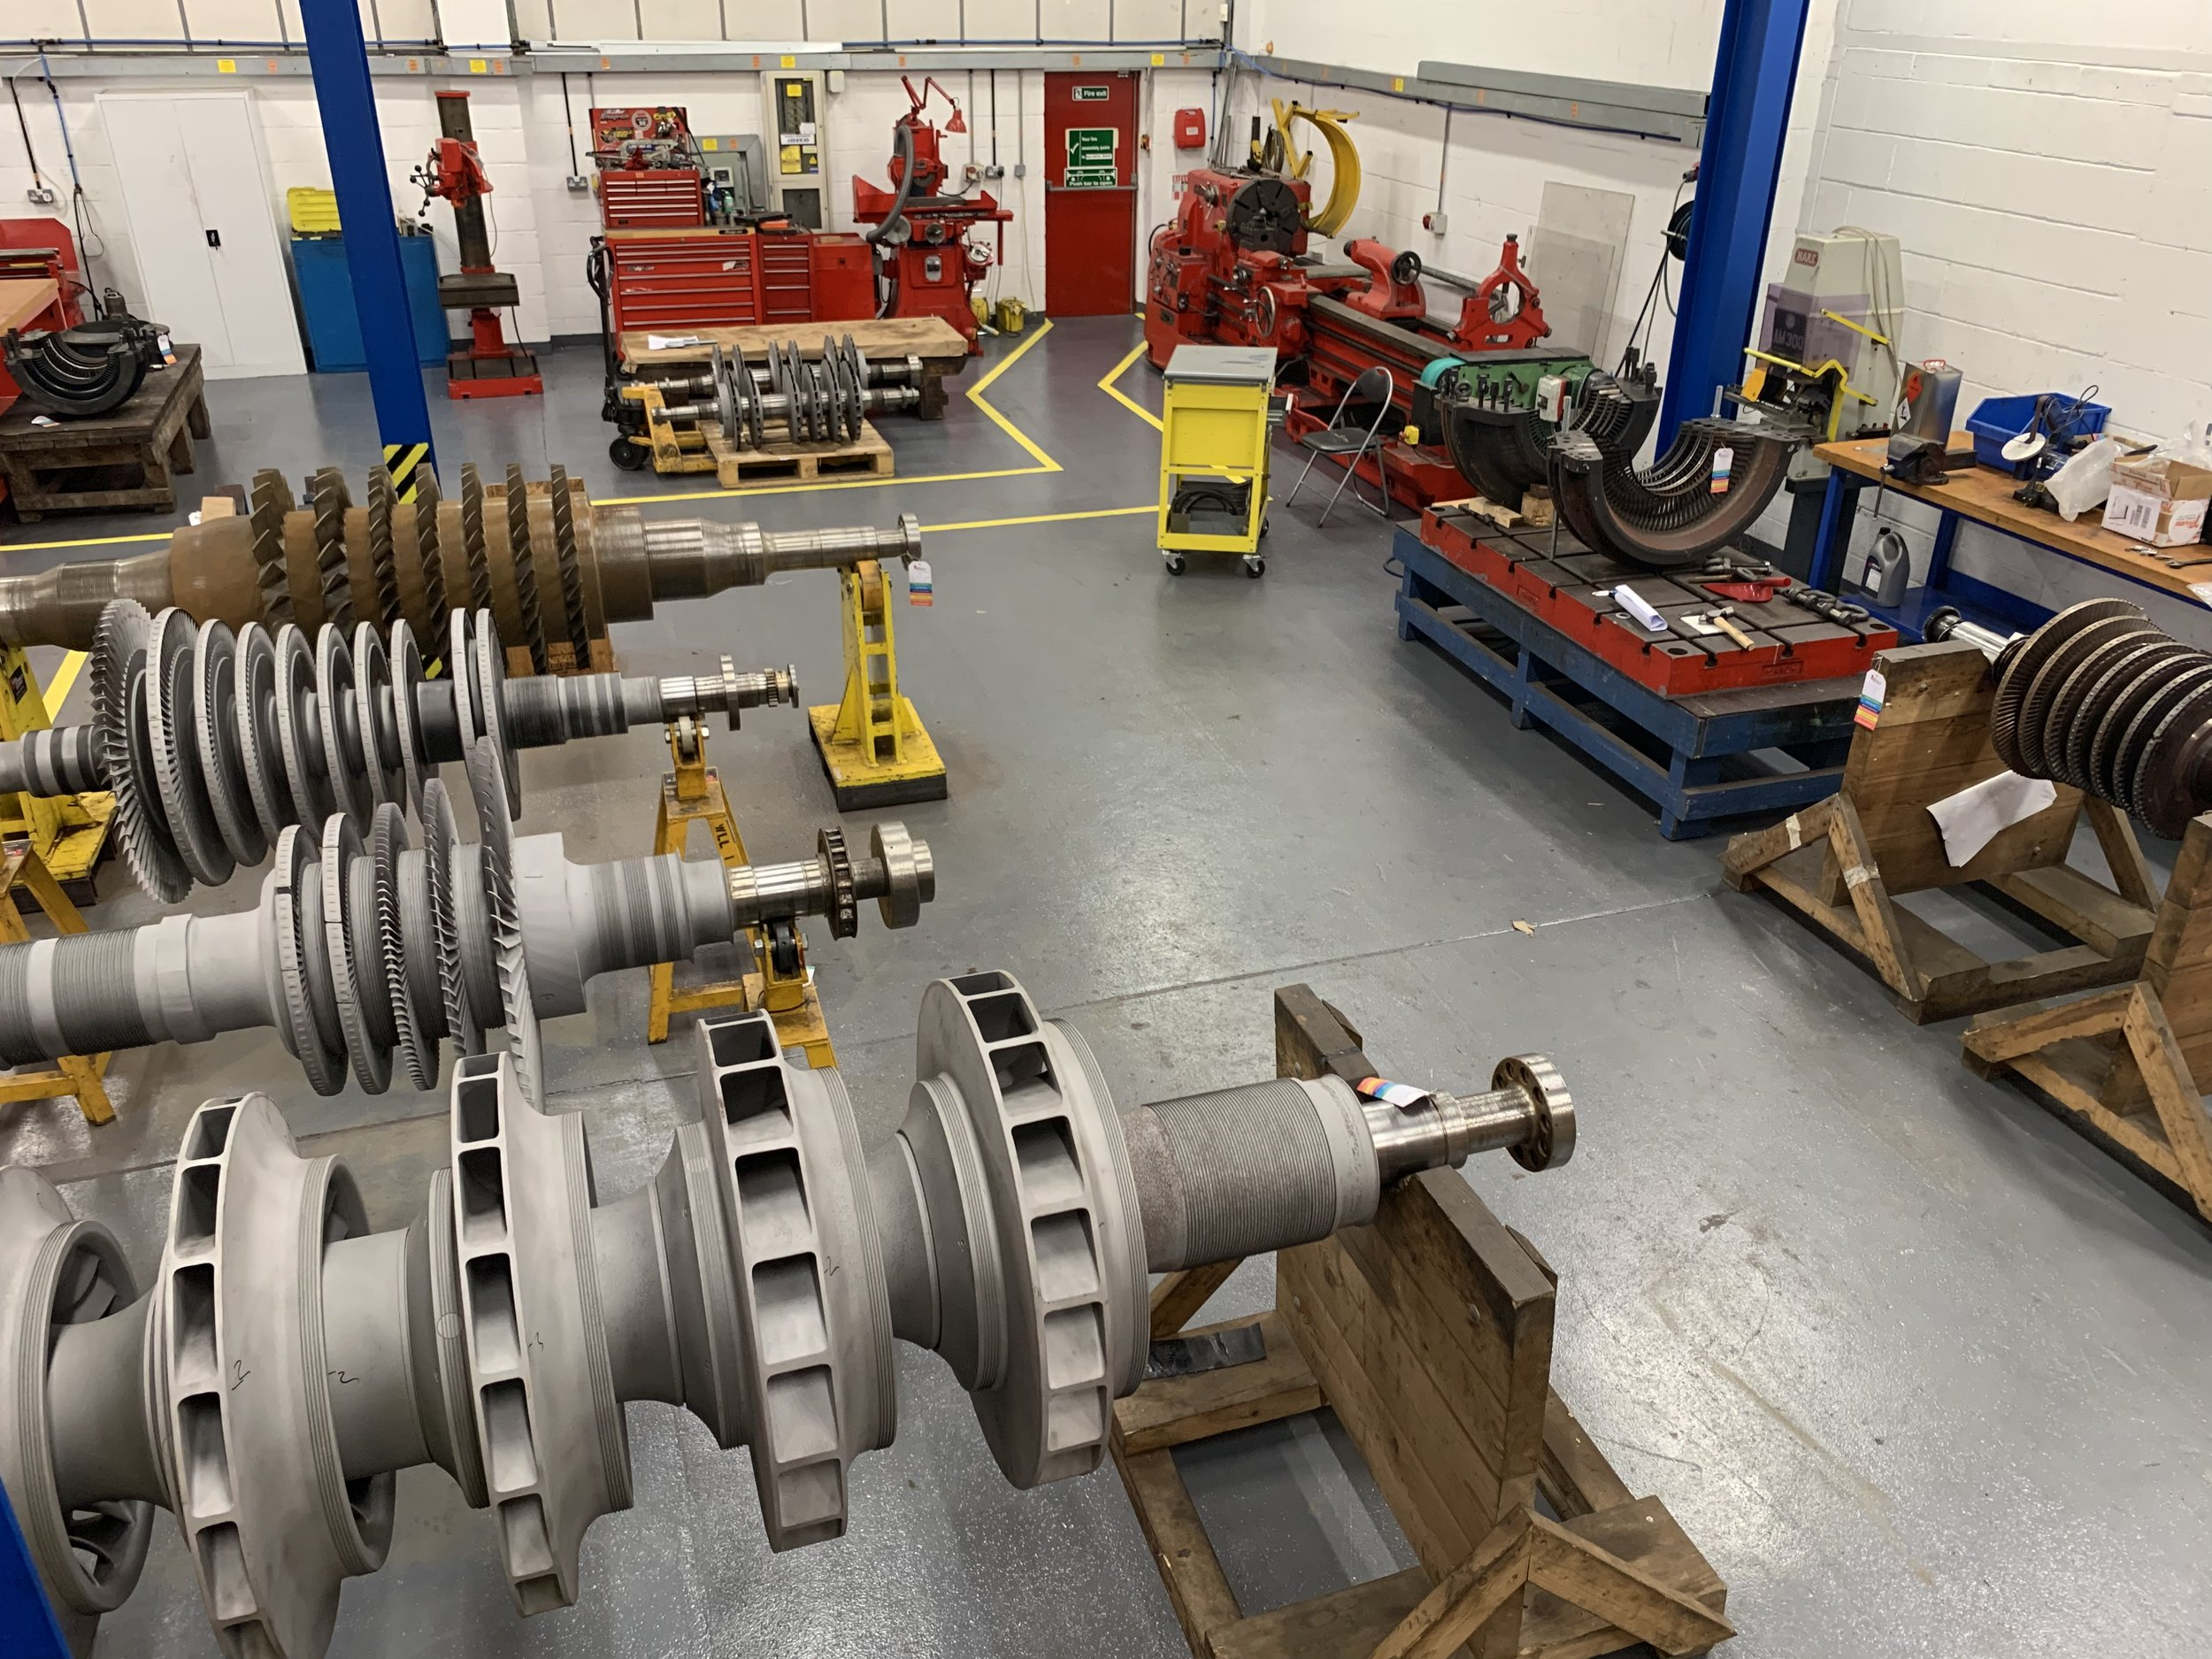 QUALITY CONTROLLED WORKSHOP ENVIRONMENT - Set up to support both planned and unplanned field activities for the manufacture, assembly and refurbishment of rotating equipment, with experience of working on most steam turbine makes and models, compressors, gearboxes and pumps